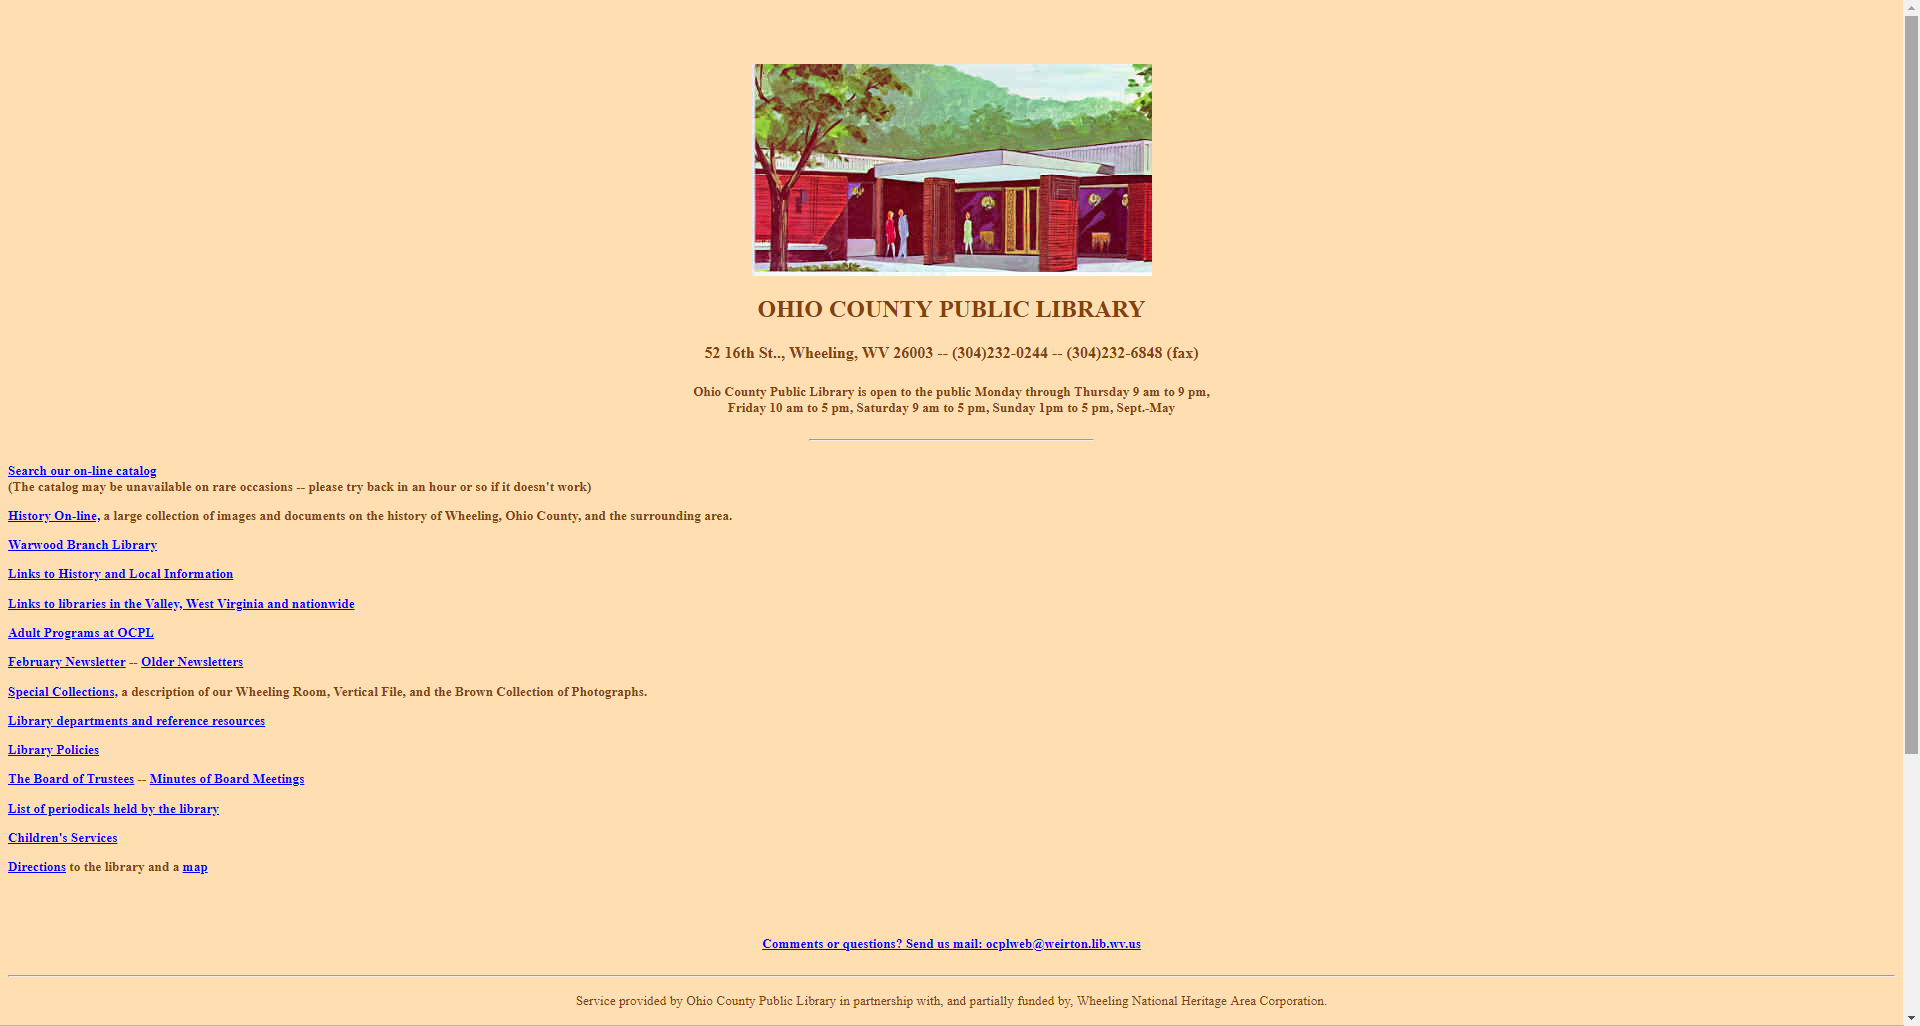 1995 OCPL website screenshot